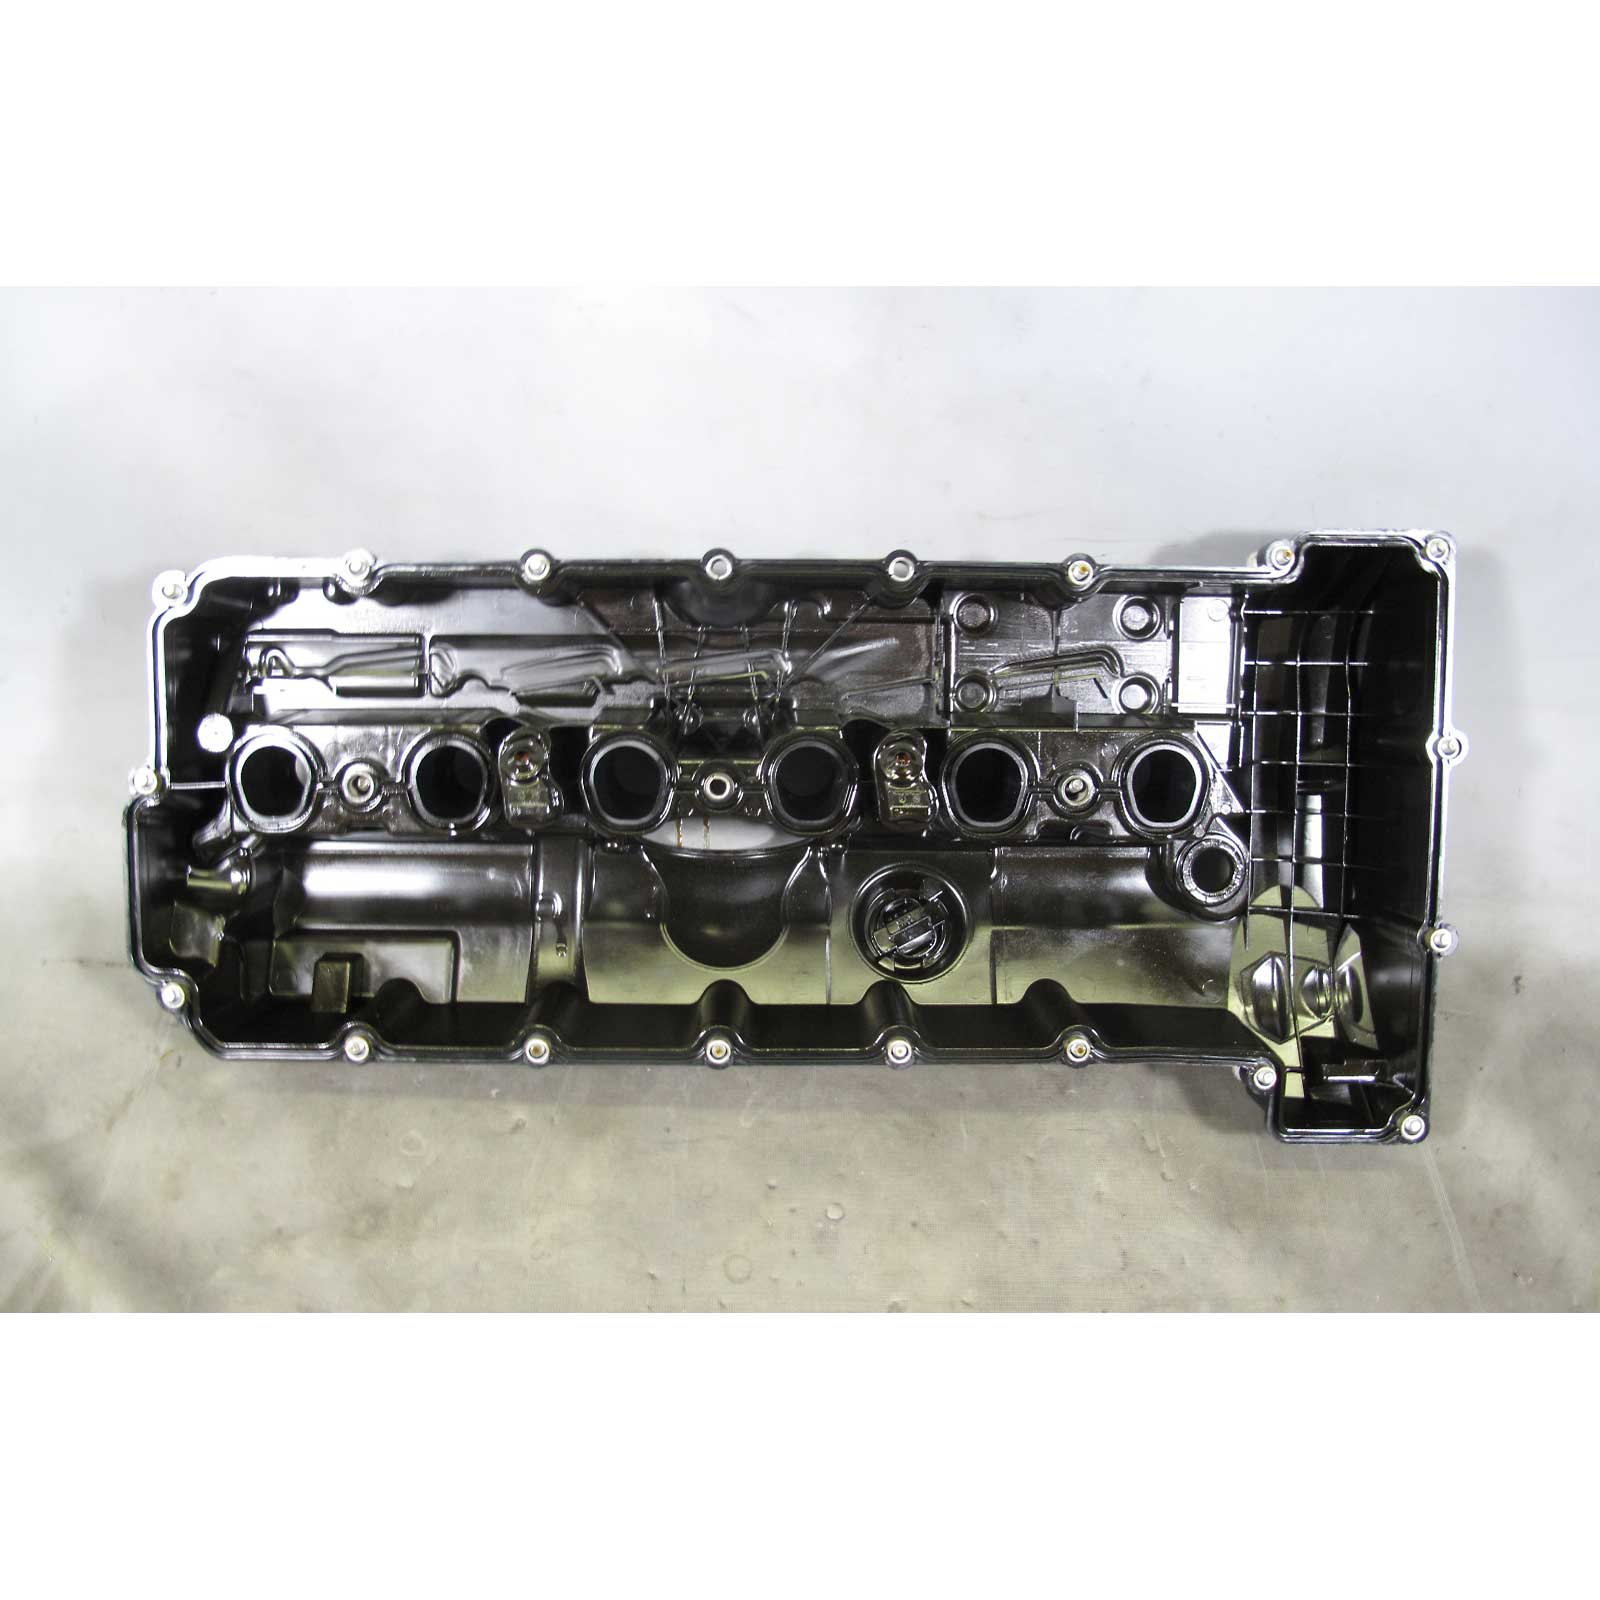 bmw n51 n52 6 cylinder engine valvetrain cylinder head. Black Bedroom Furniture Sets. Home Design Ideas